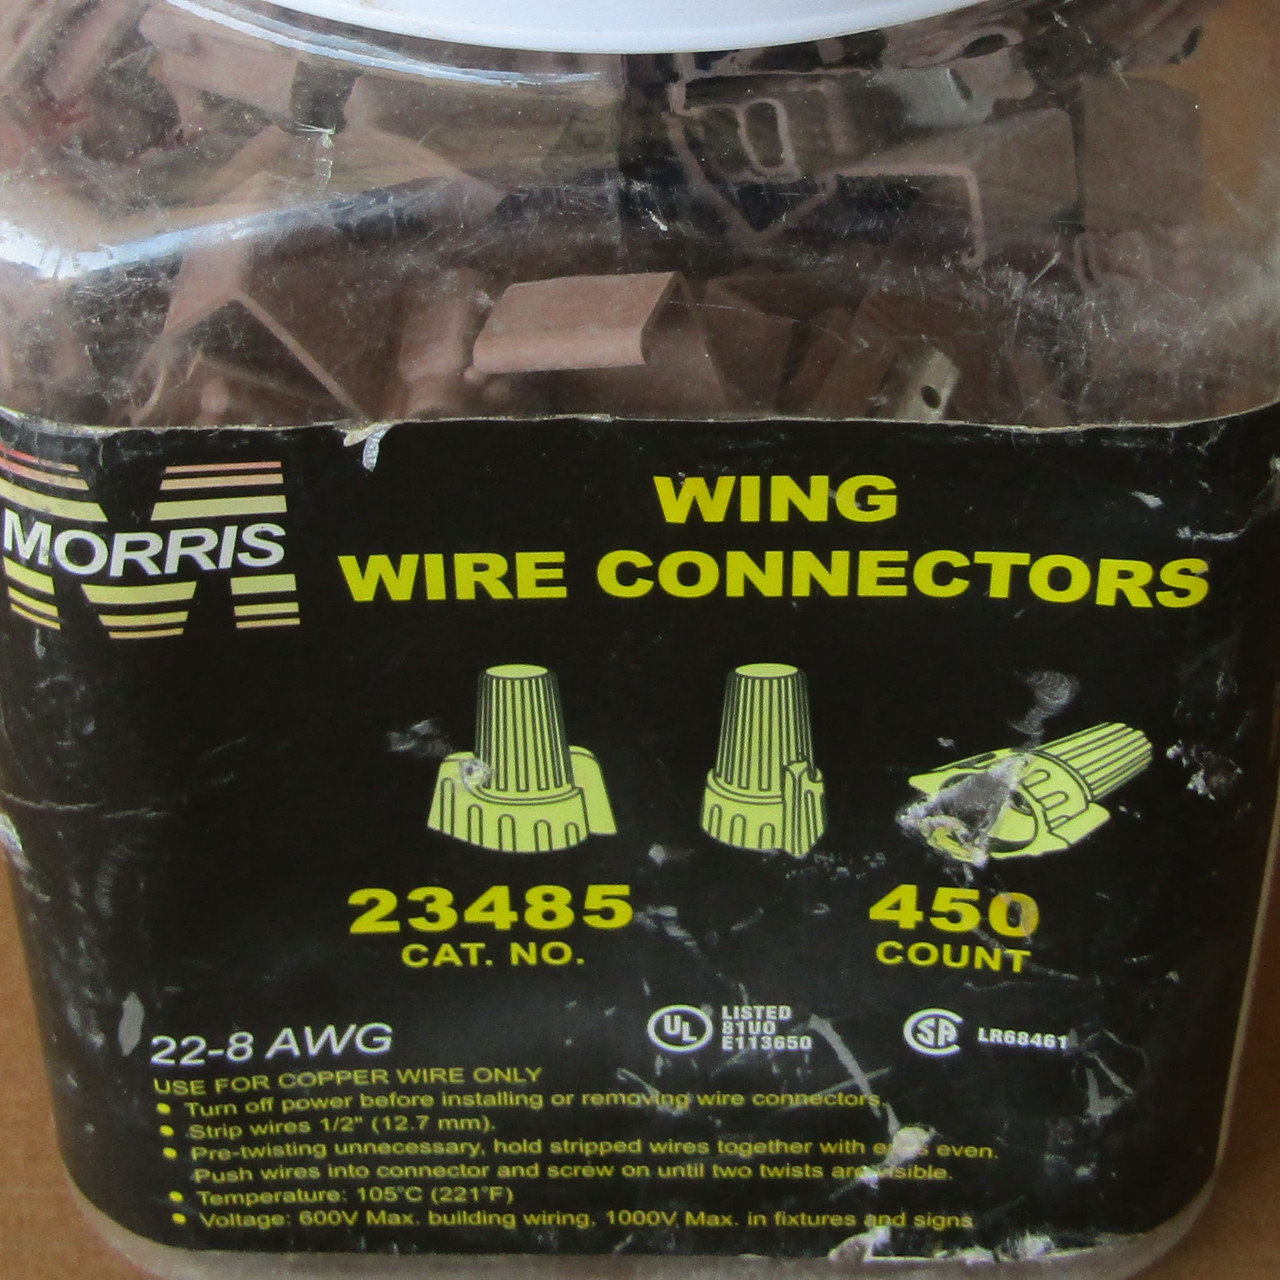 Morris 23485 Wing Wire Connectors 22-8 AWG Tan 450 Count - New